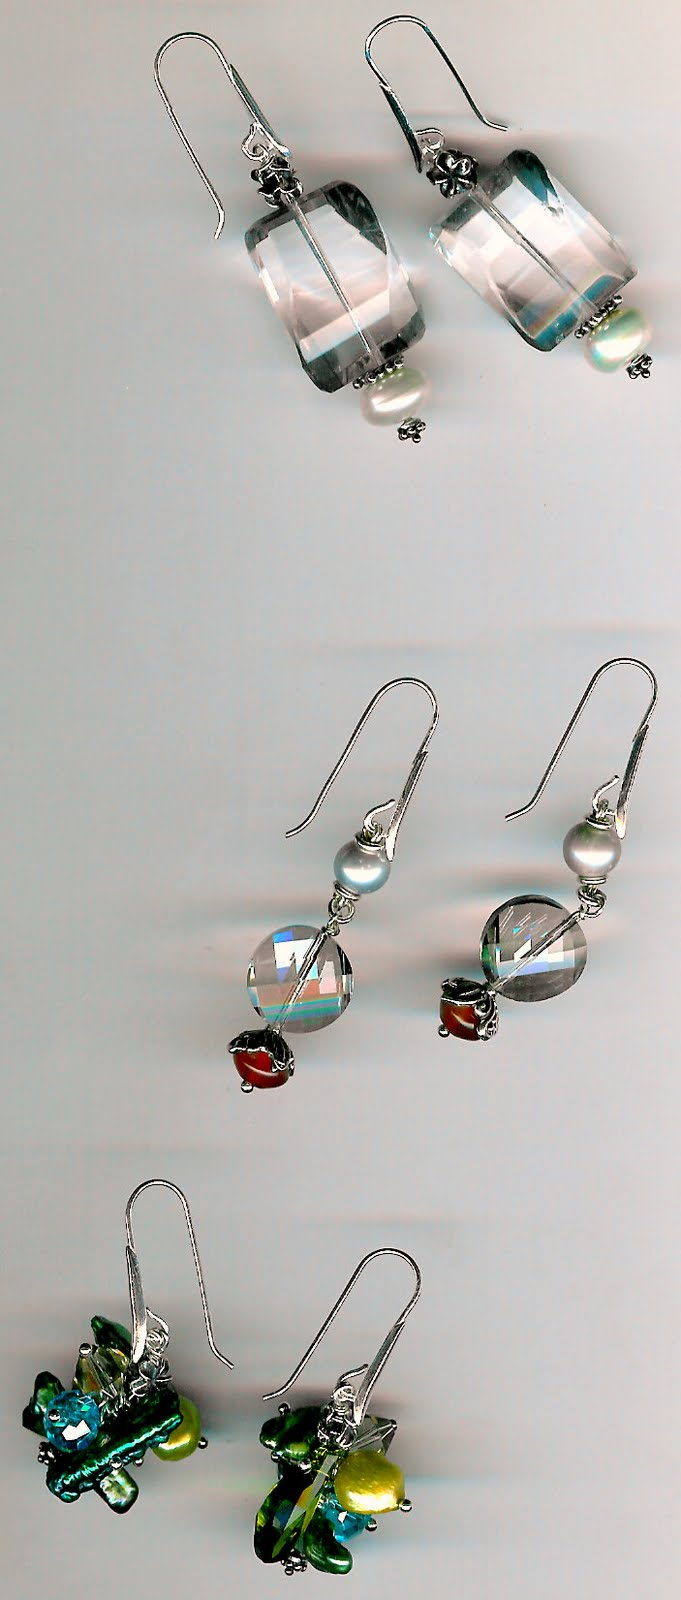 165. Fluorite, Crystal, Carnelian, Freshwater and Baroque Pearls with Bali Sterling Silver Earrings